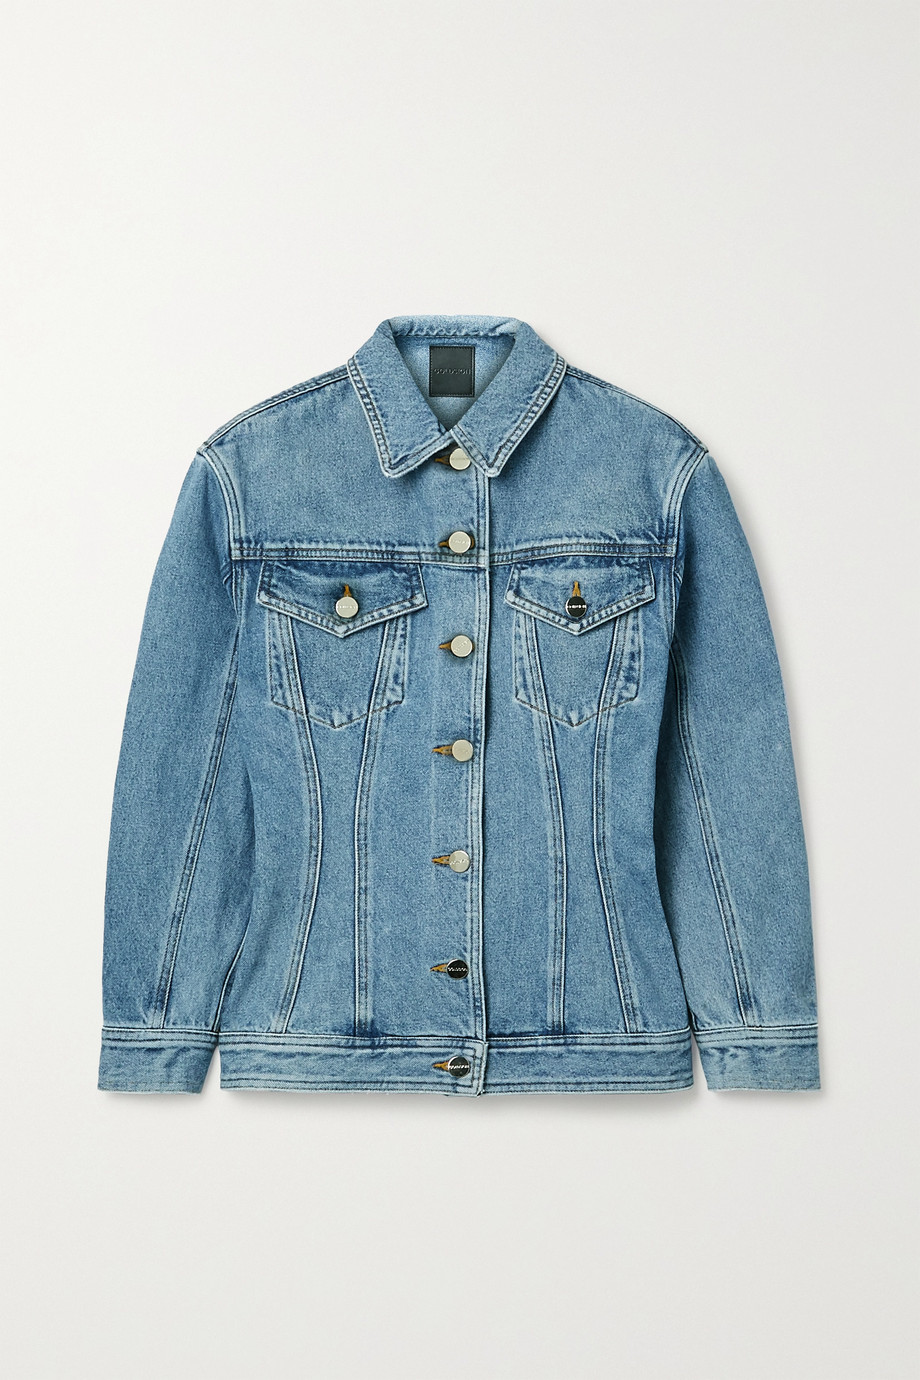 GOLDSIGN + NET SUSTAIN Rainer denim jacket